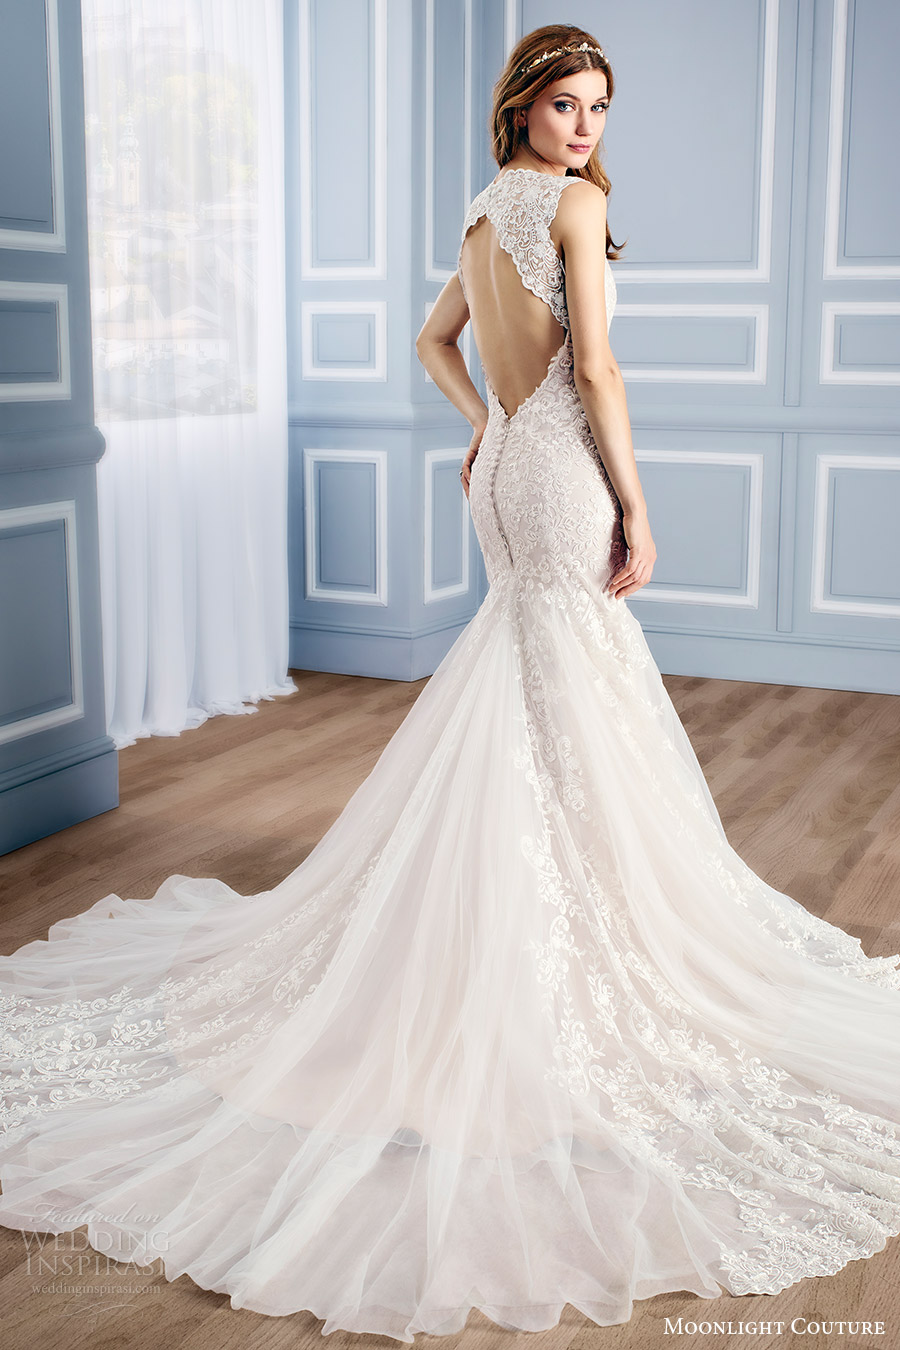 moonlight couture bridal fall 2016 sleeveless vneck lace mermaid wedding dress (h1312) bv keyhole back train